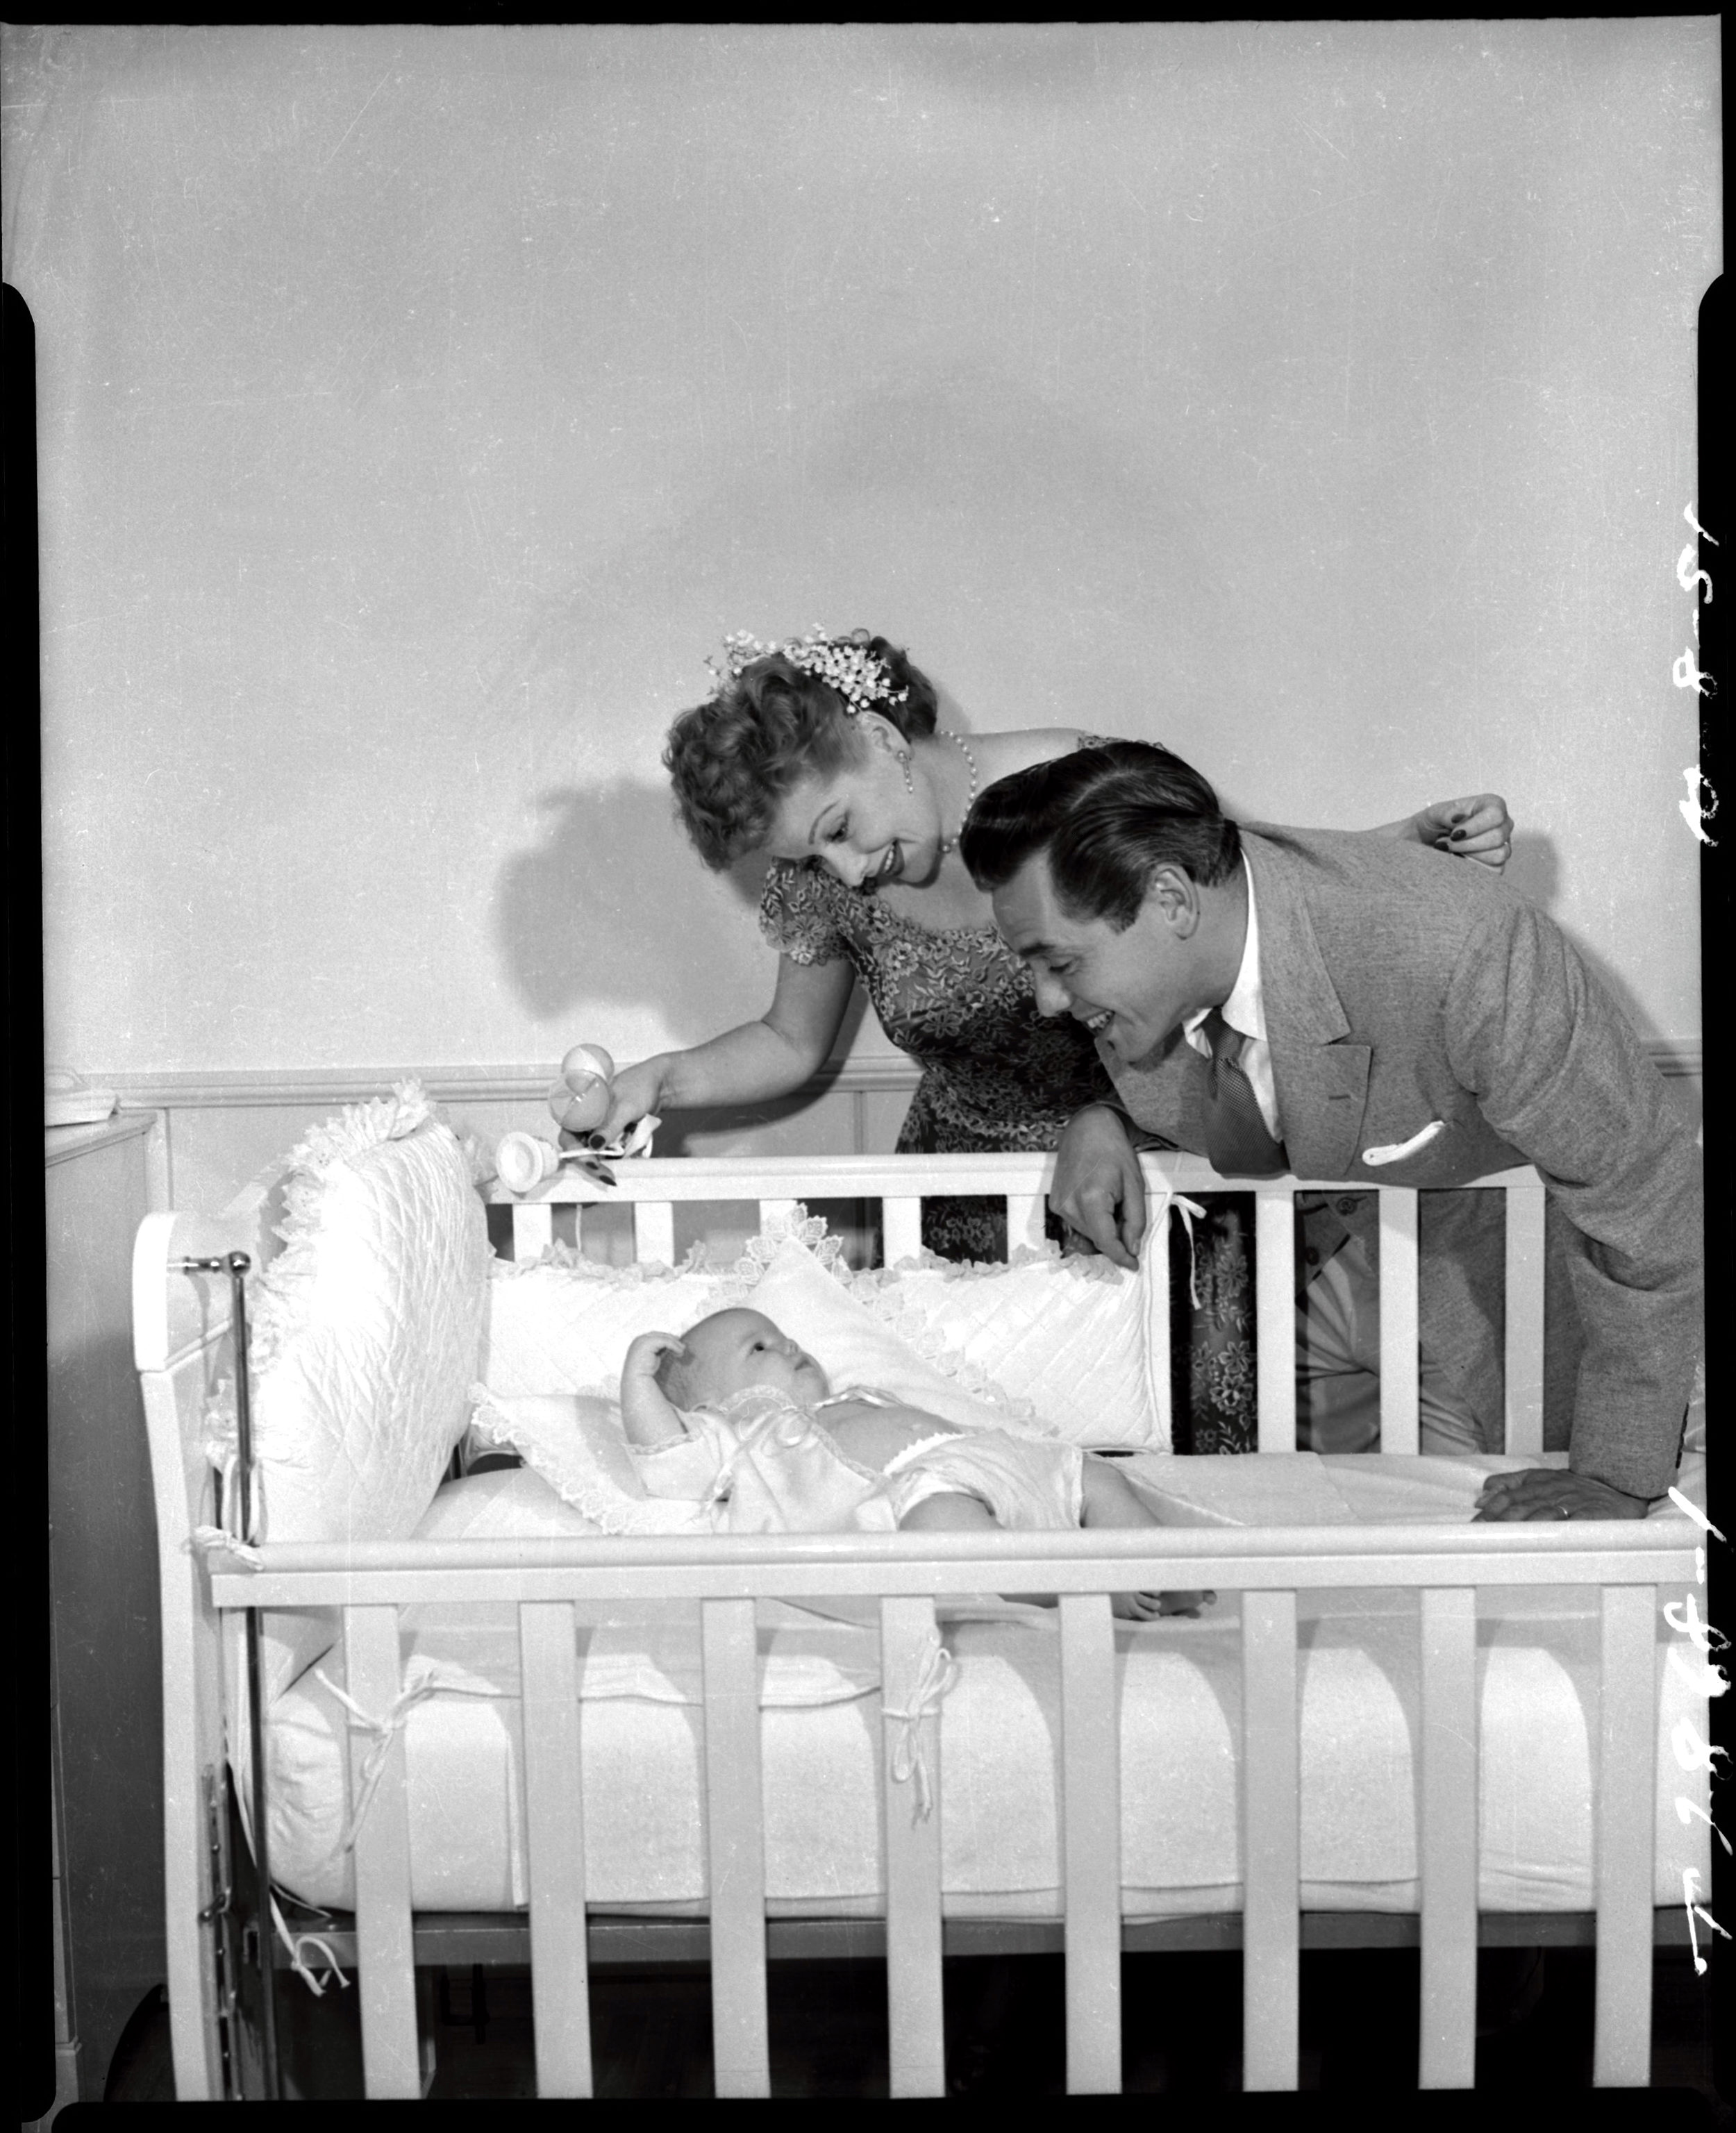 I Love Lucy  promotional shot of Lucille Ball and Desi Arnaz and their child, Lucy Desiree Arnaz.